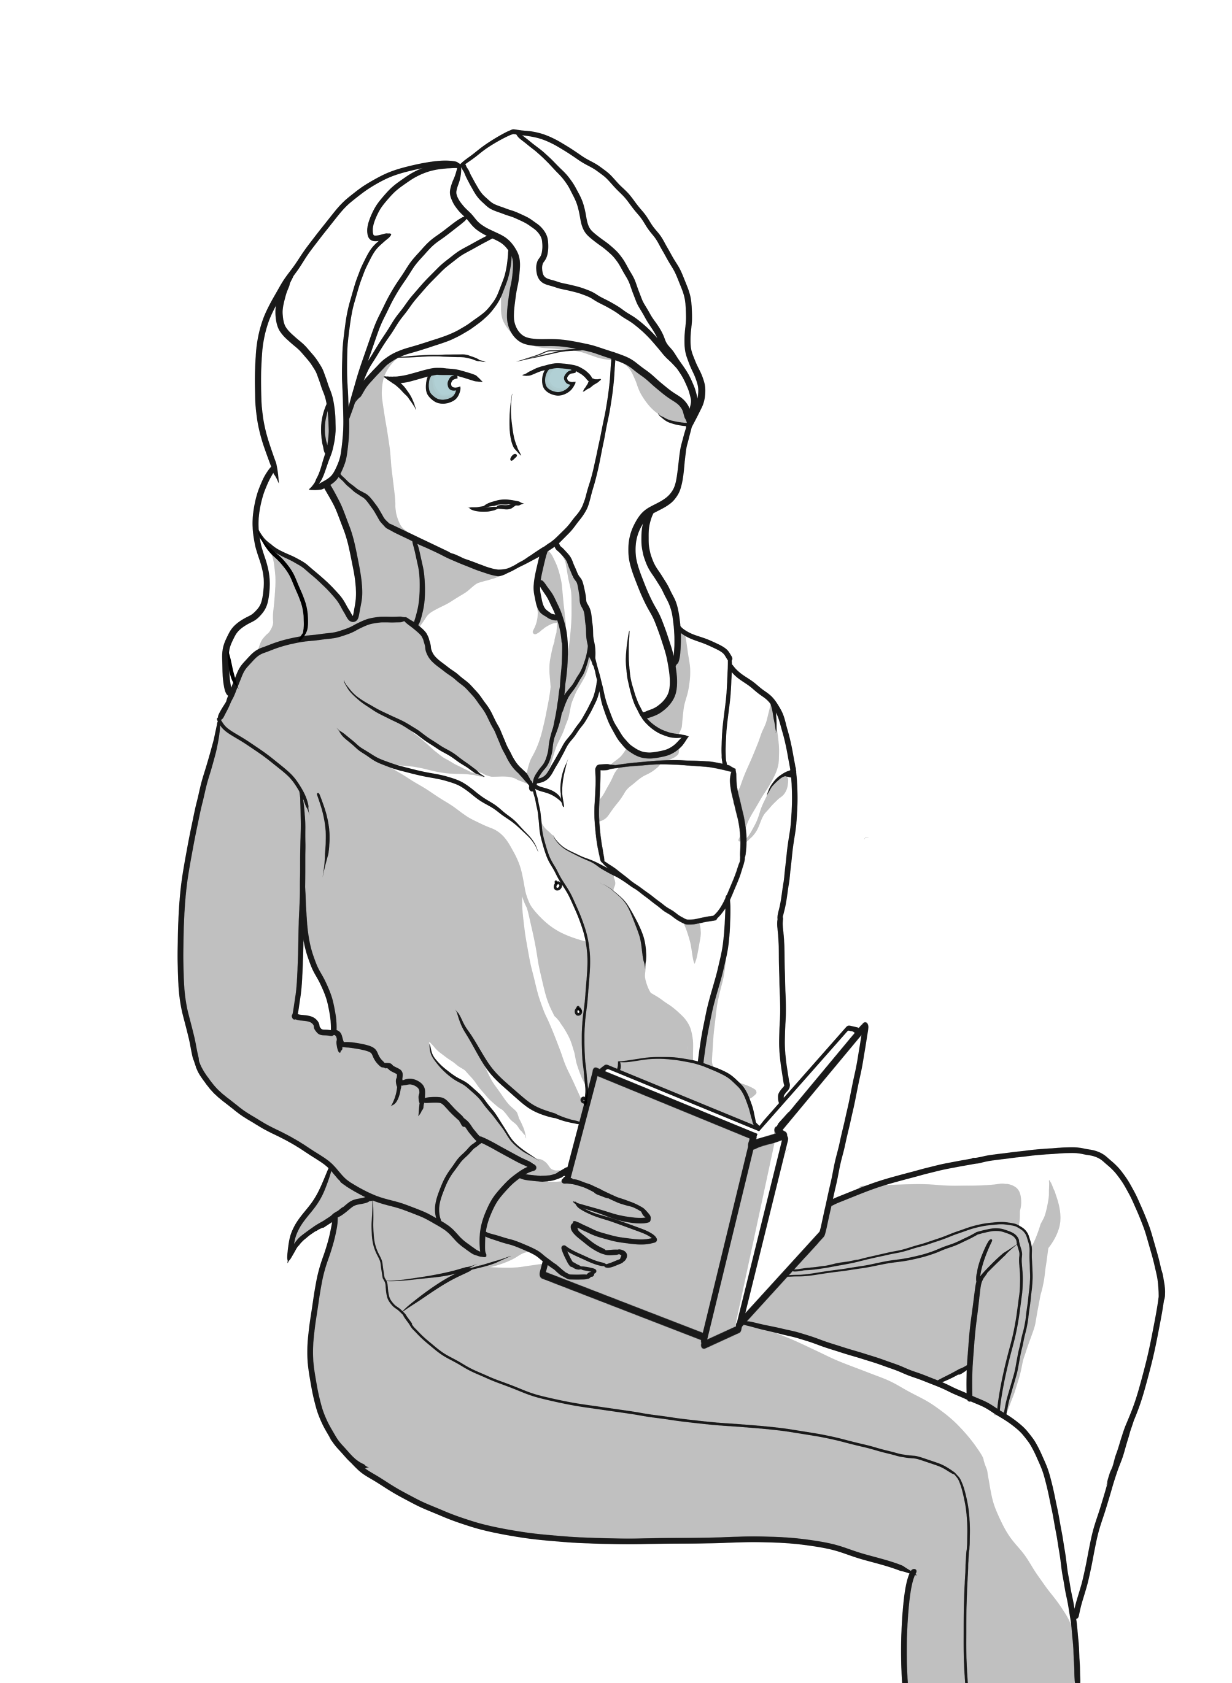 A digital drawing of Diana Cavendish from Little Witch Academia seated holding a book.